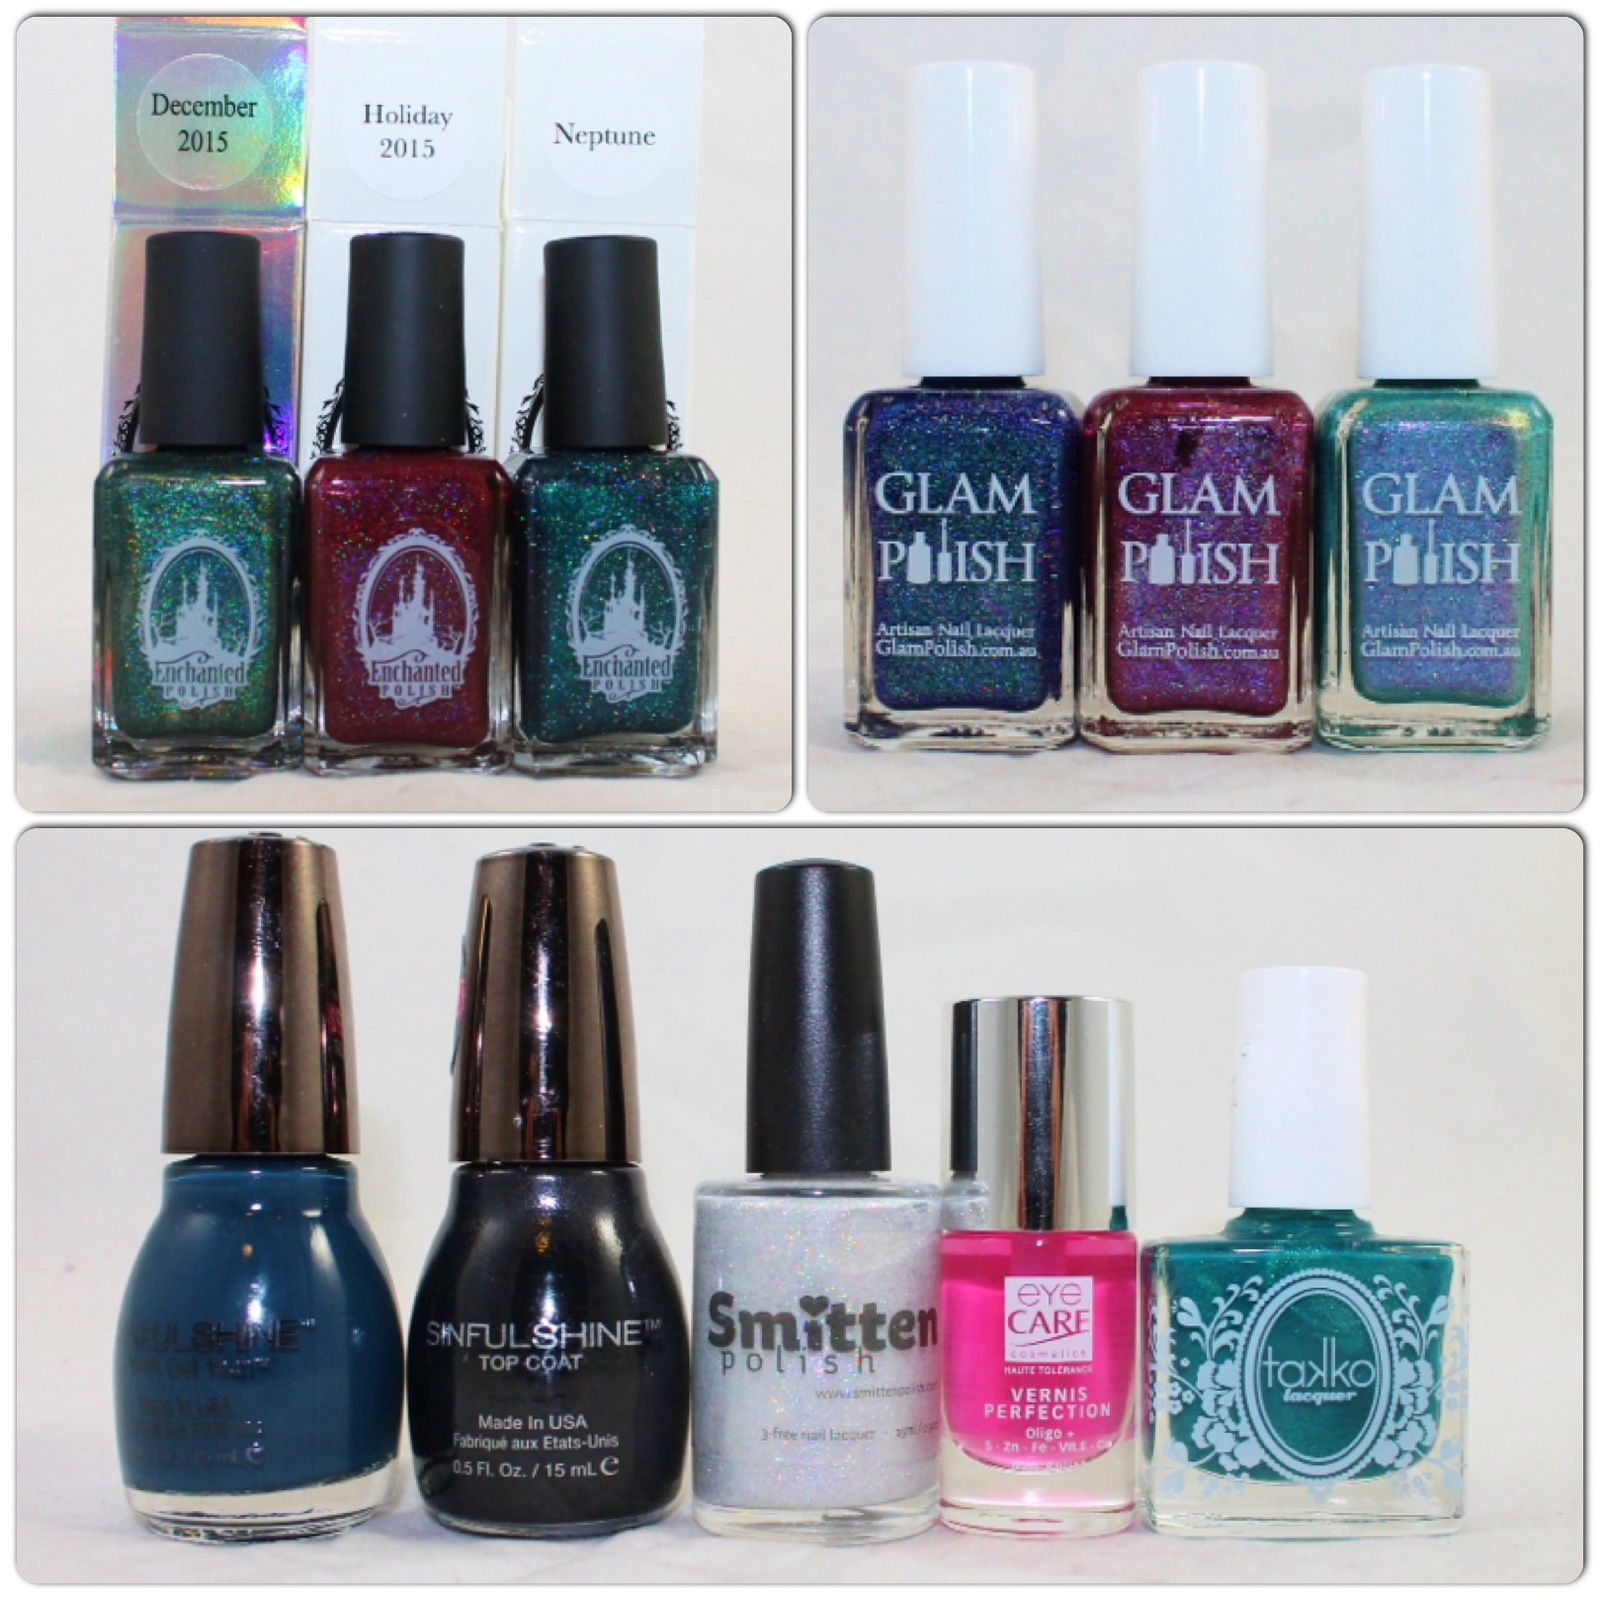 Enchanted Polish December 2015, Holiday 2015 & Neptune. Glam Polish Cosmic Shower, Frankly Scarlett I Don't Give a Glam & Chaos. Sinful Colors Set the Mood and SinfulShine TopCoat. Smitten Polish Shoe Polish. Eye Care Cosmetics FluoNight Polish. Takko Lacquer La Sirena.